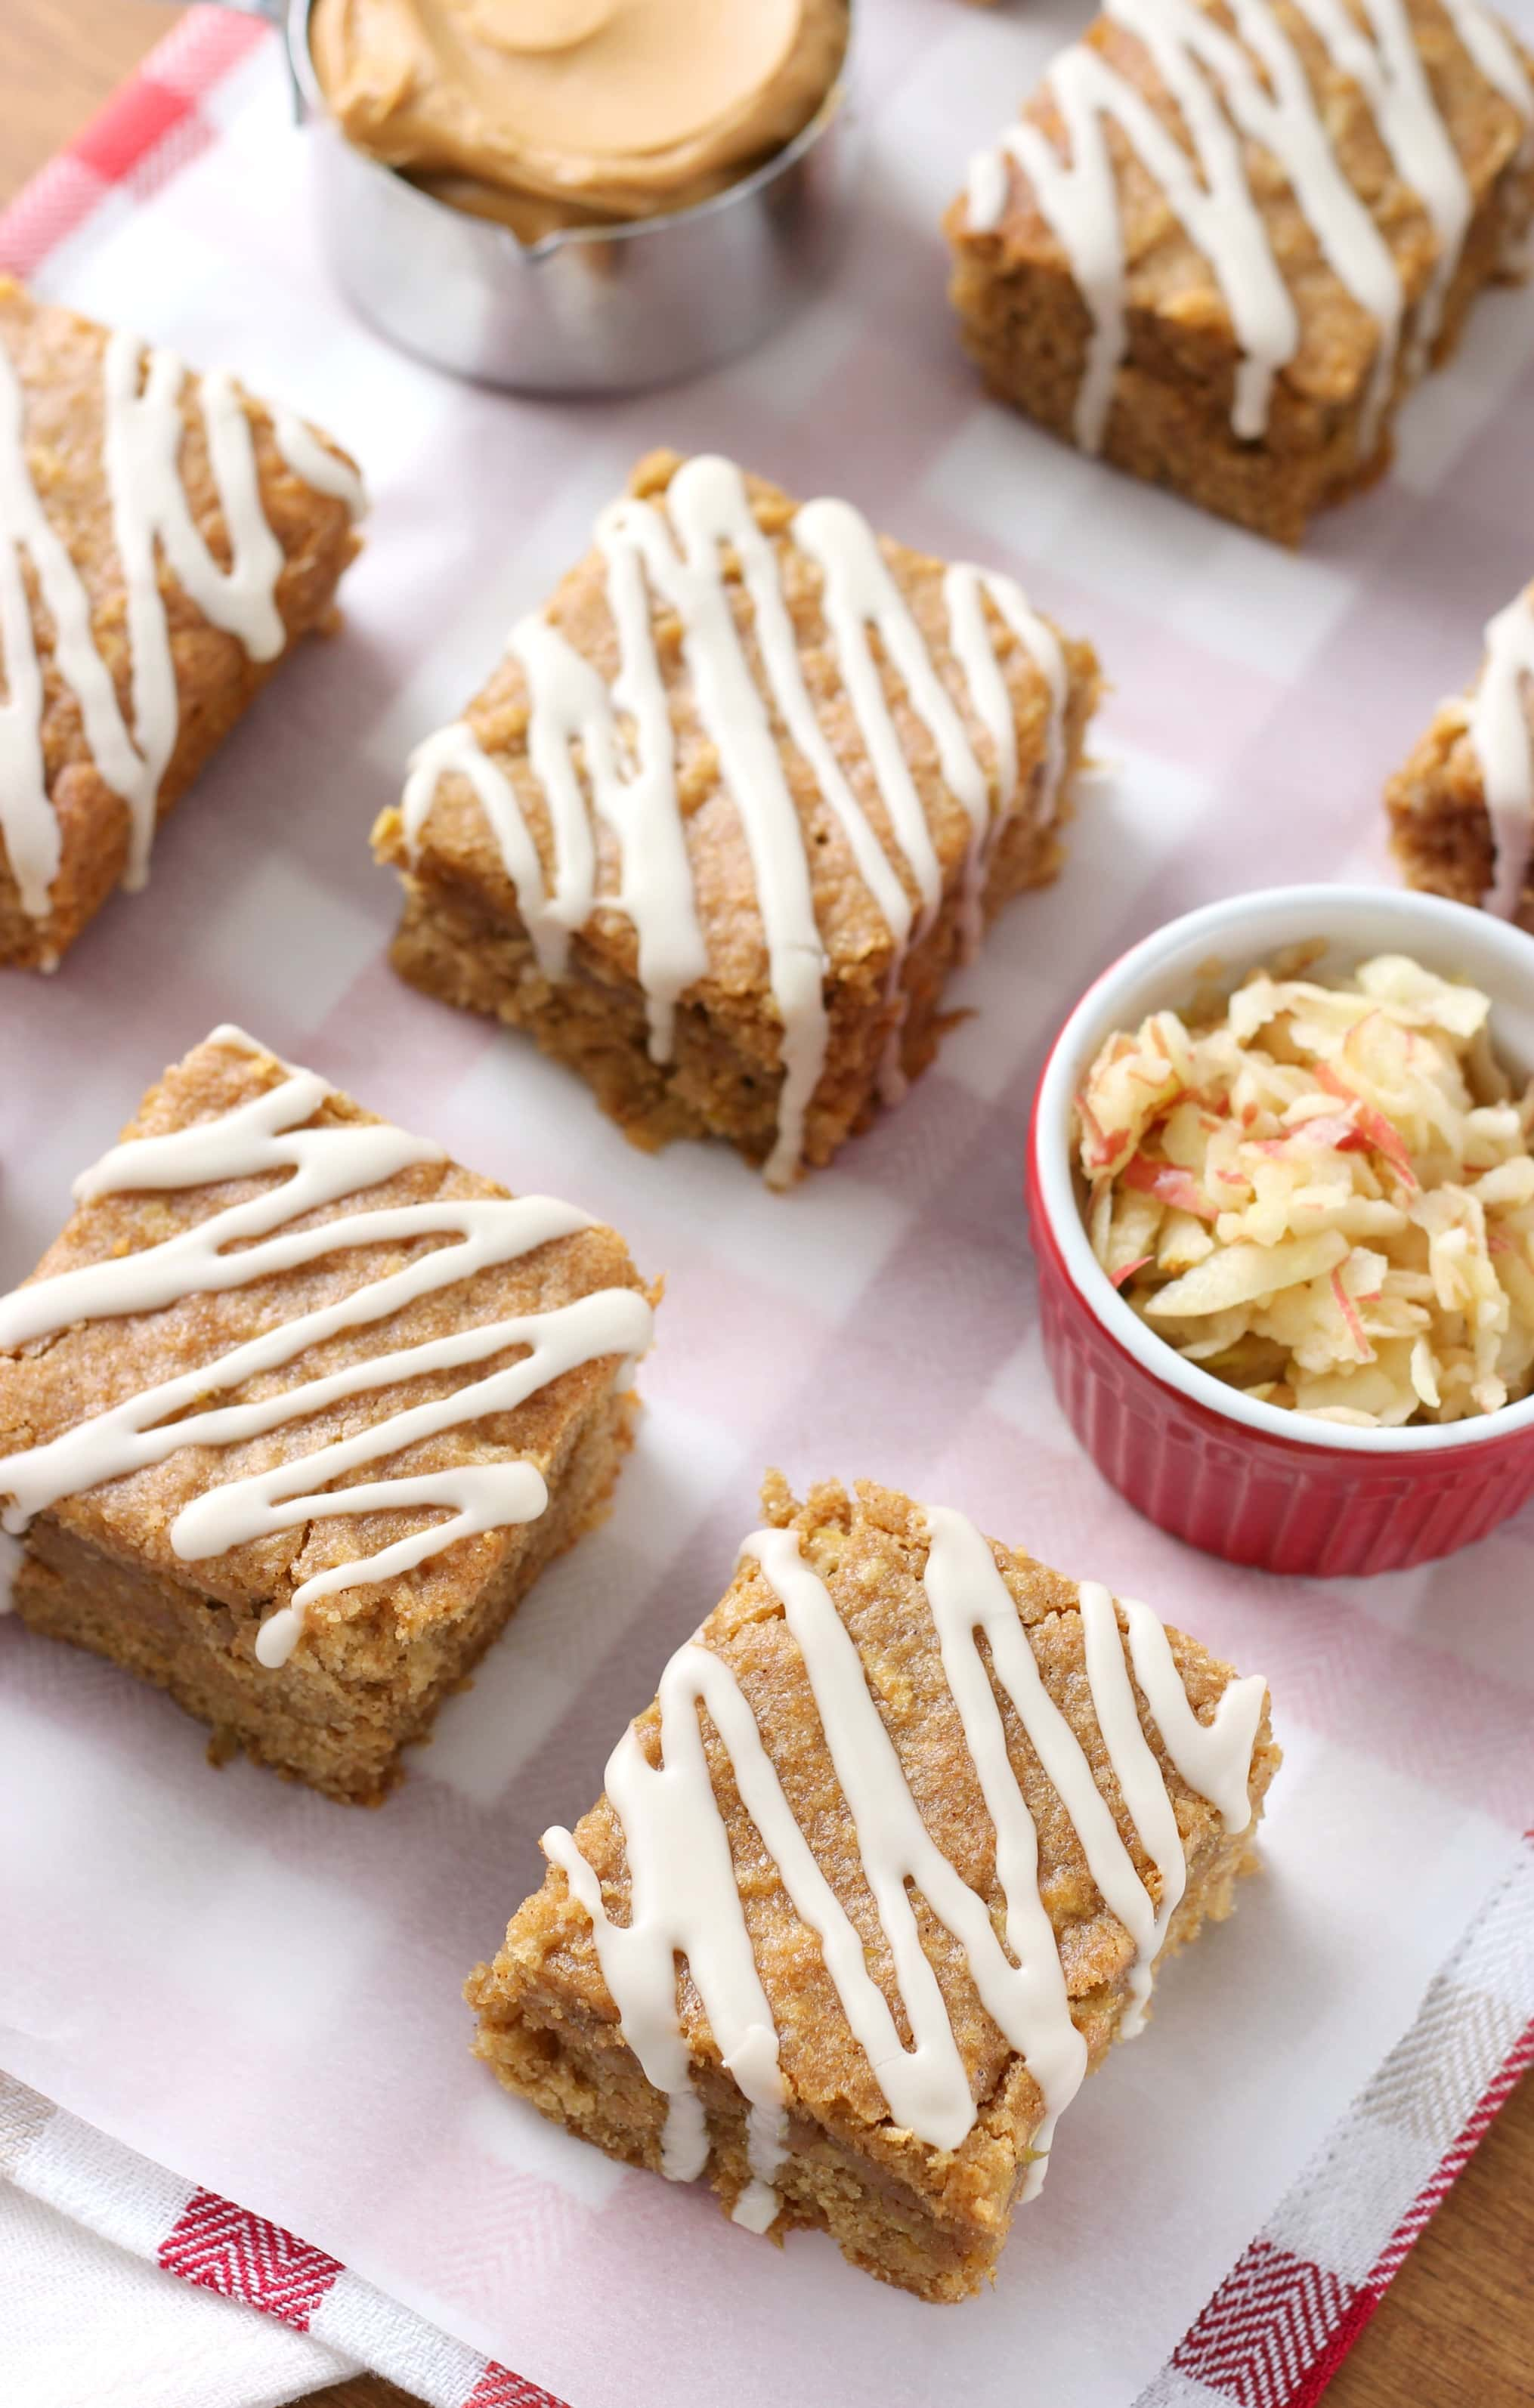 Whole Wheat Maple Glazed Apple Peanut Butter Bars Recipe from A Kitchen Addiction